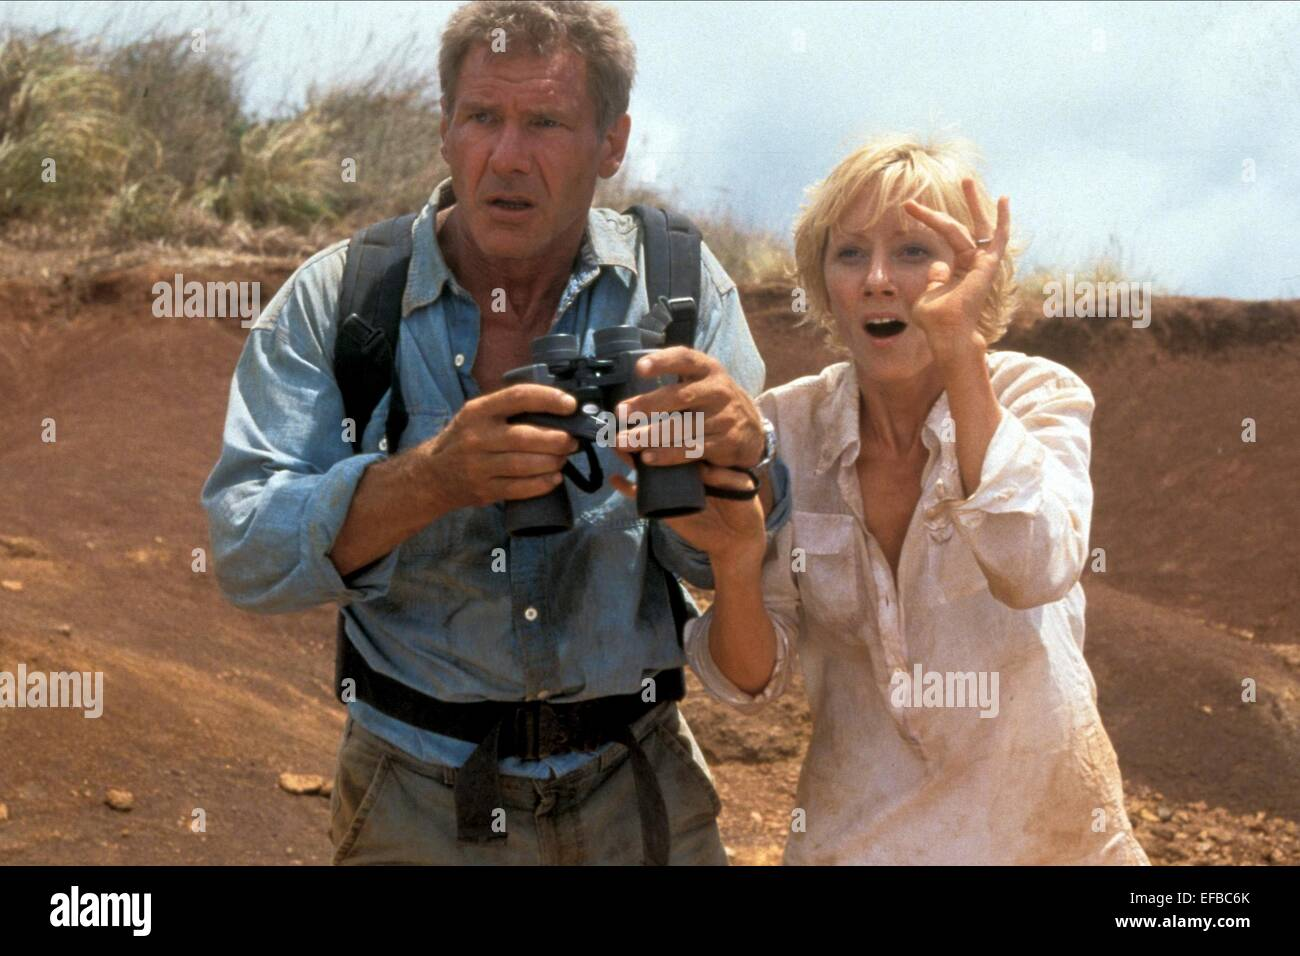 Harrison ford anne heche six days seven nights 1998 stock photo